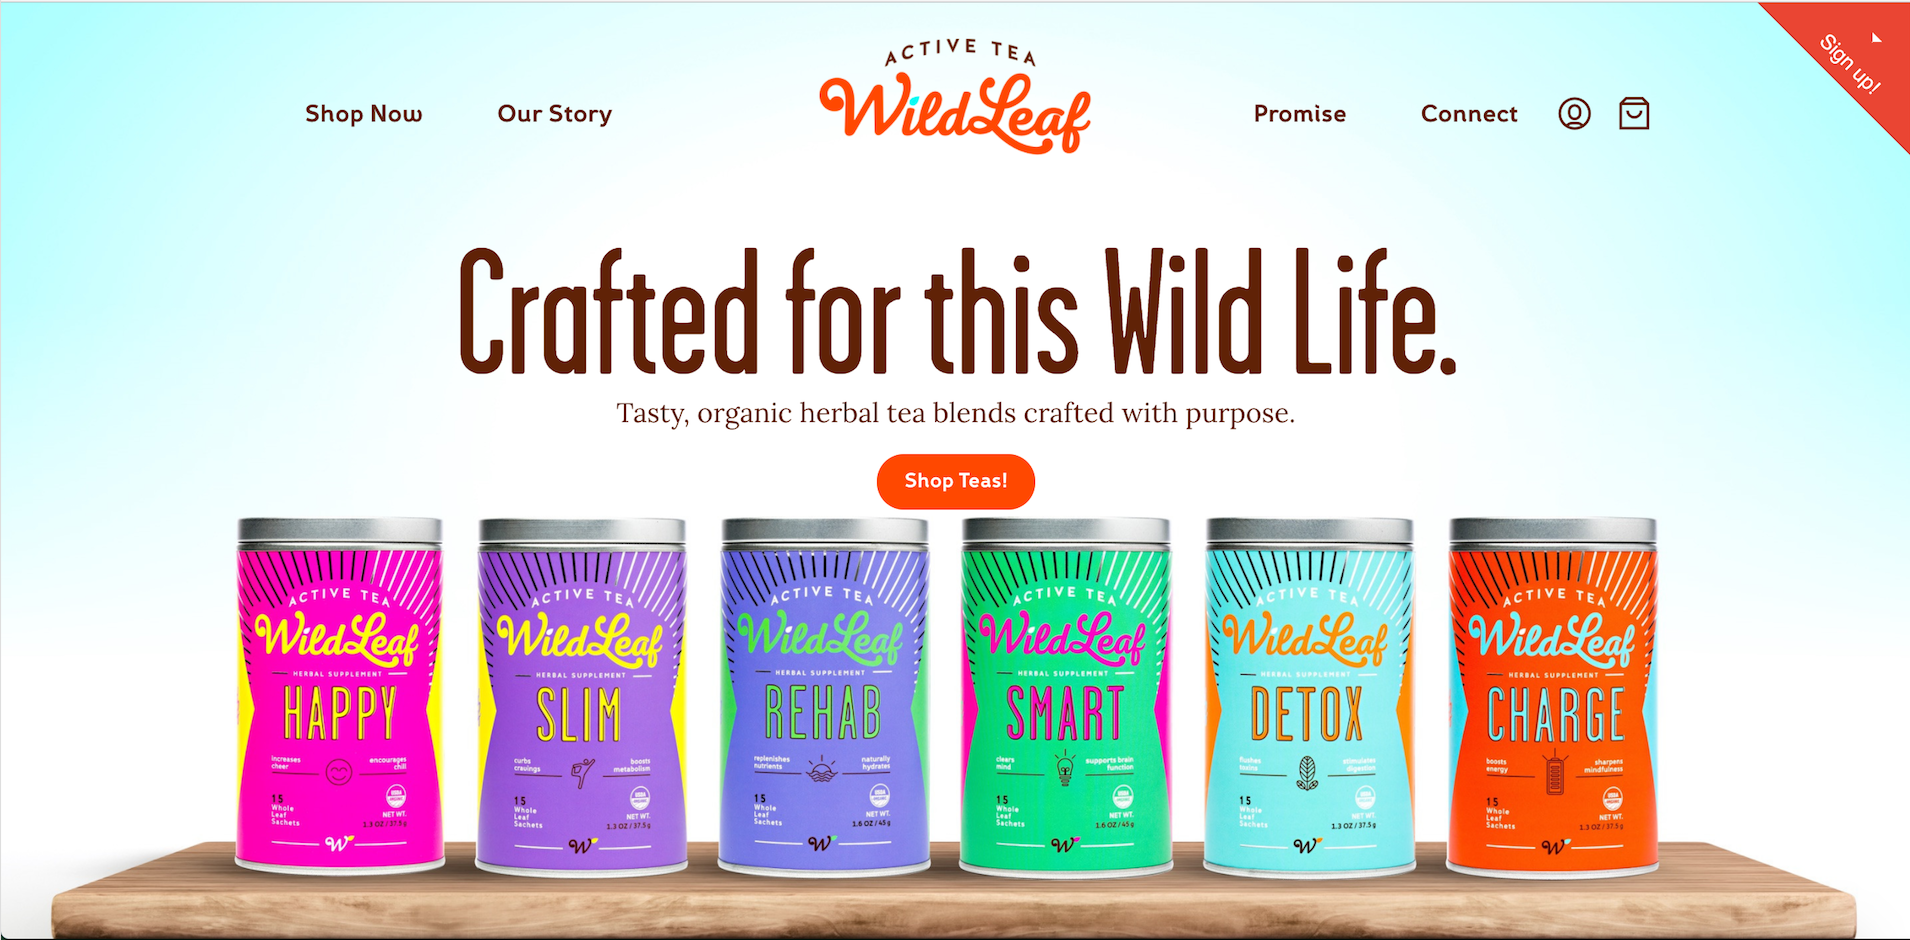 Wild Leaf Tea - Example of Beautiful Ecommerce Product Photography